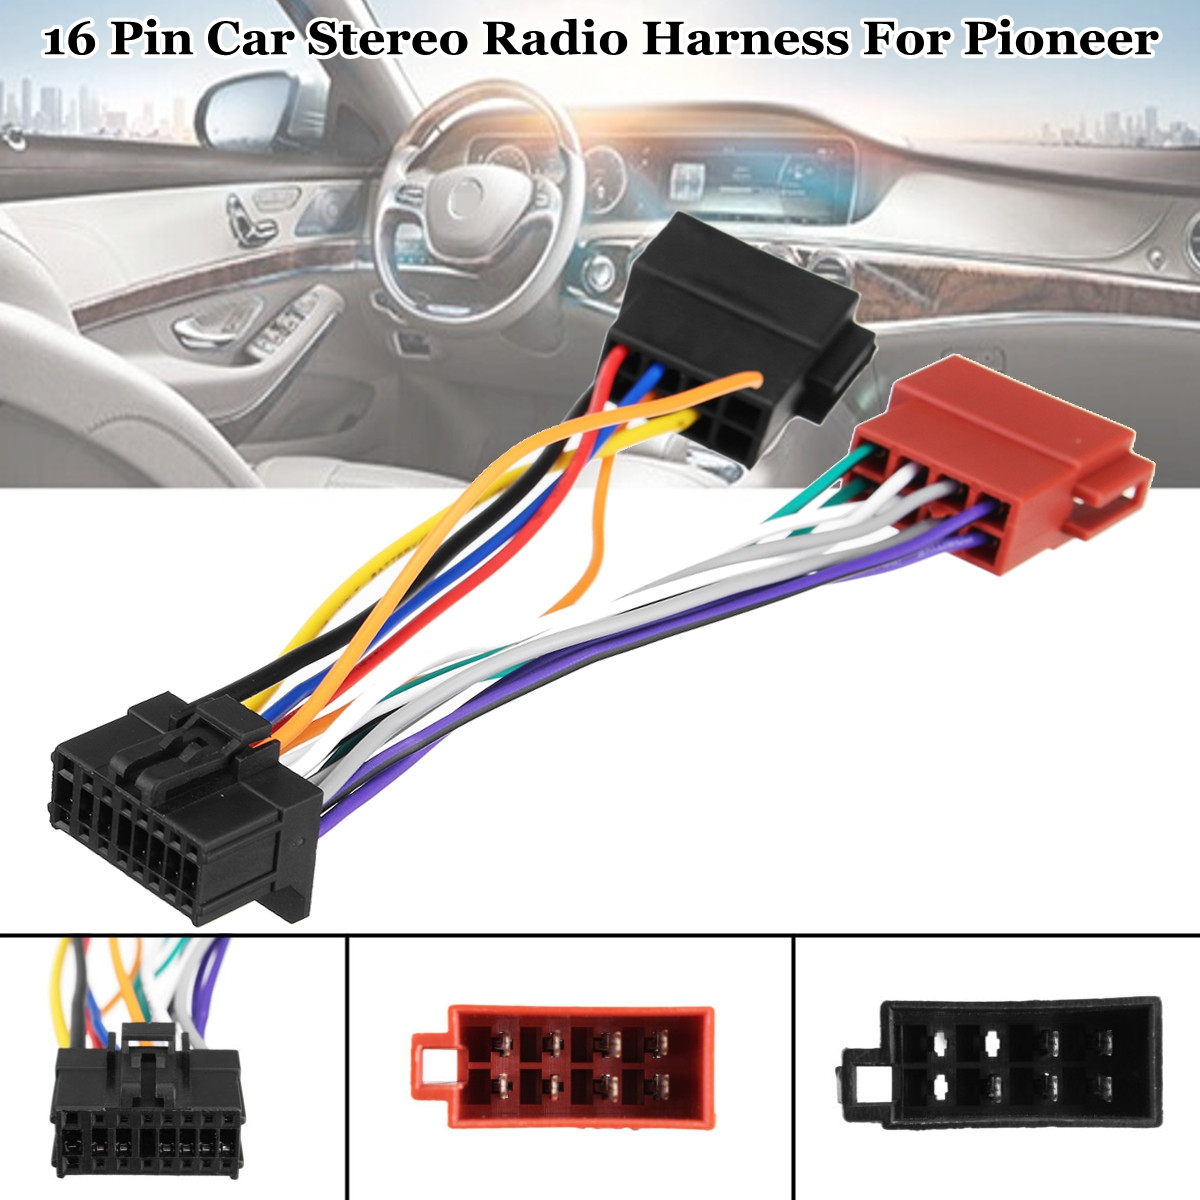 car stereo radio iso wiring harness connector 16 pin pi100 for pioneer 2003 on in cables adapters sockets from automobiles motorcycles on  [ 1200 x 1200 Pixel ]